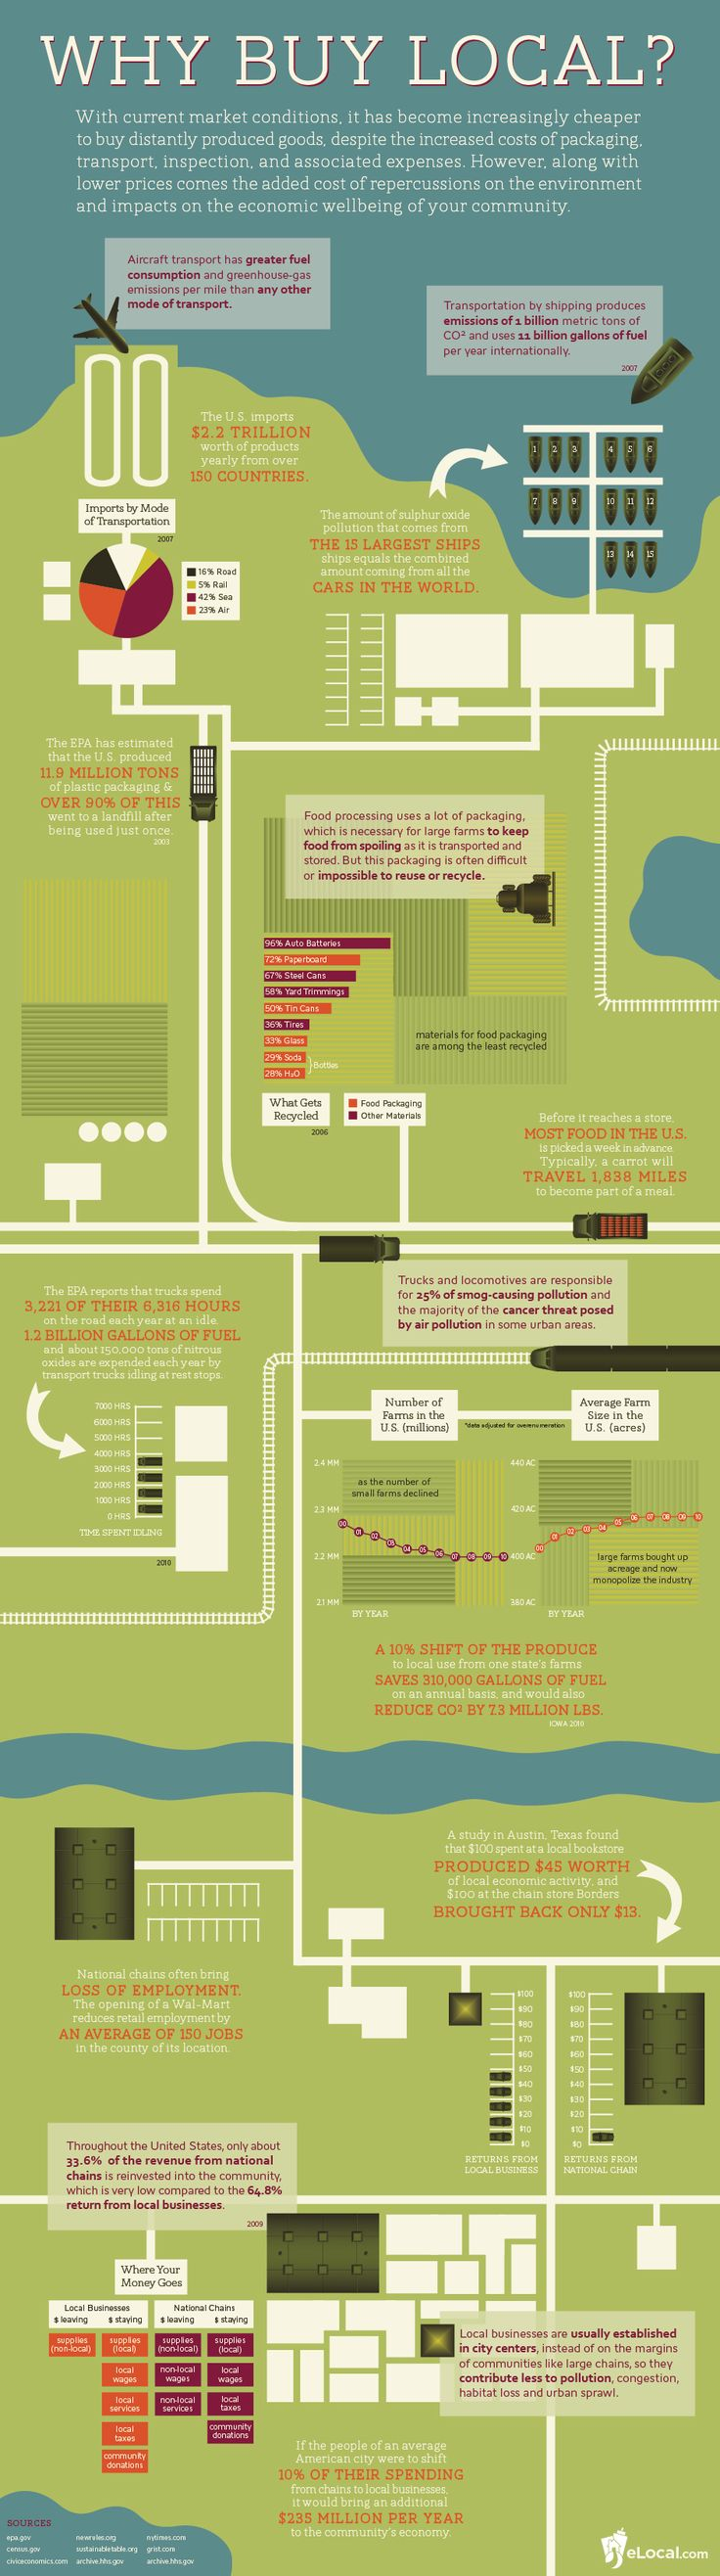 Why buy local? [infographic]